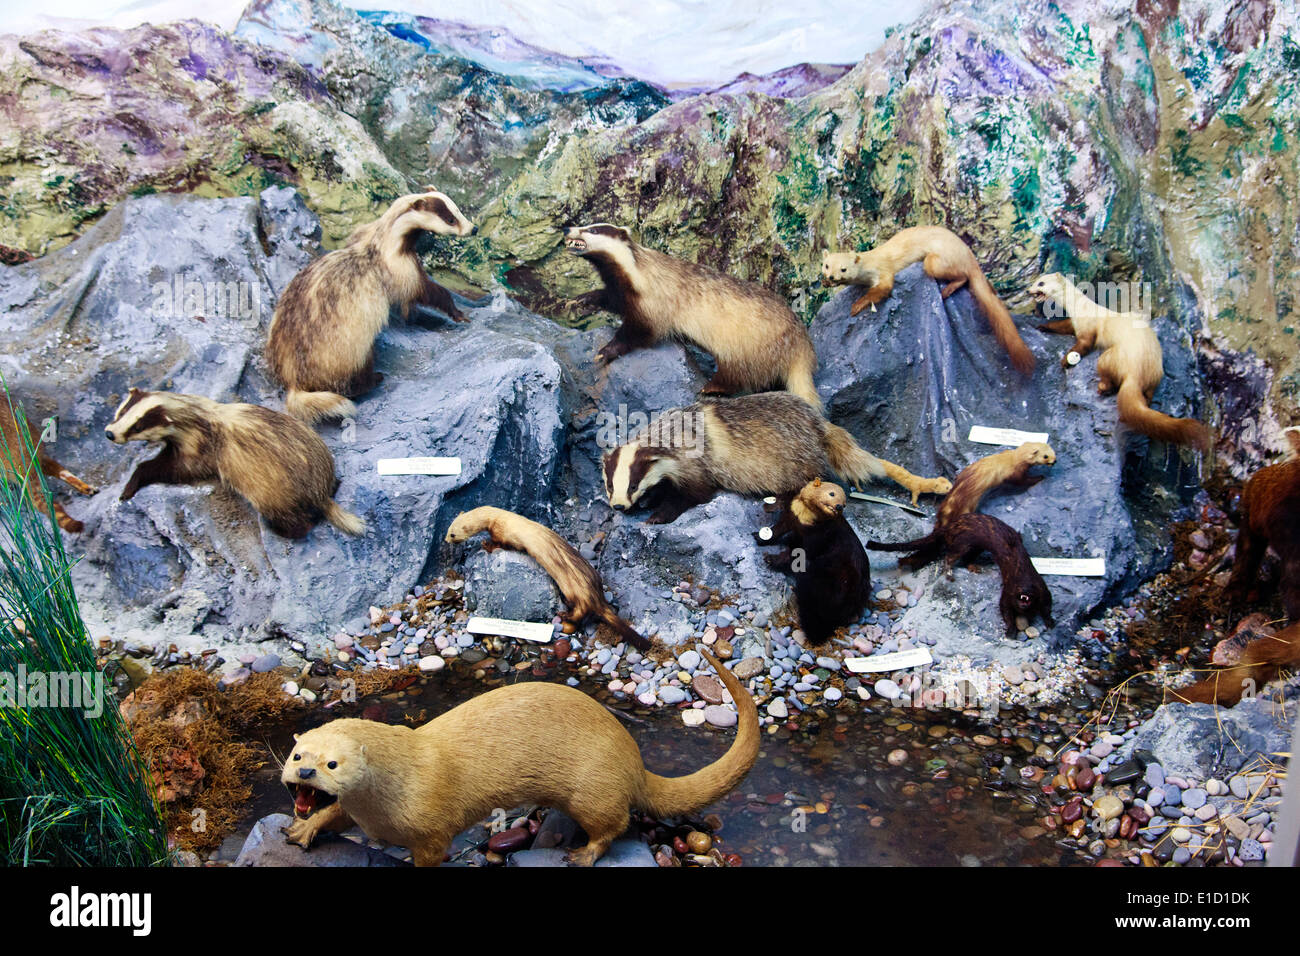 Badger and other mammals display in the 'El Carmen' Natural Science Museum in Onda, Spain - Stock Image